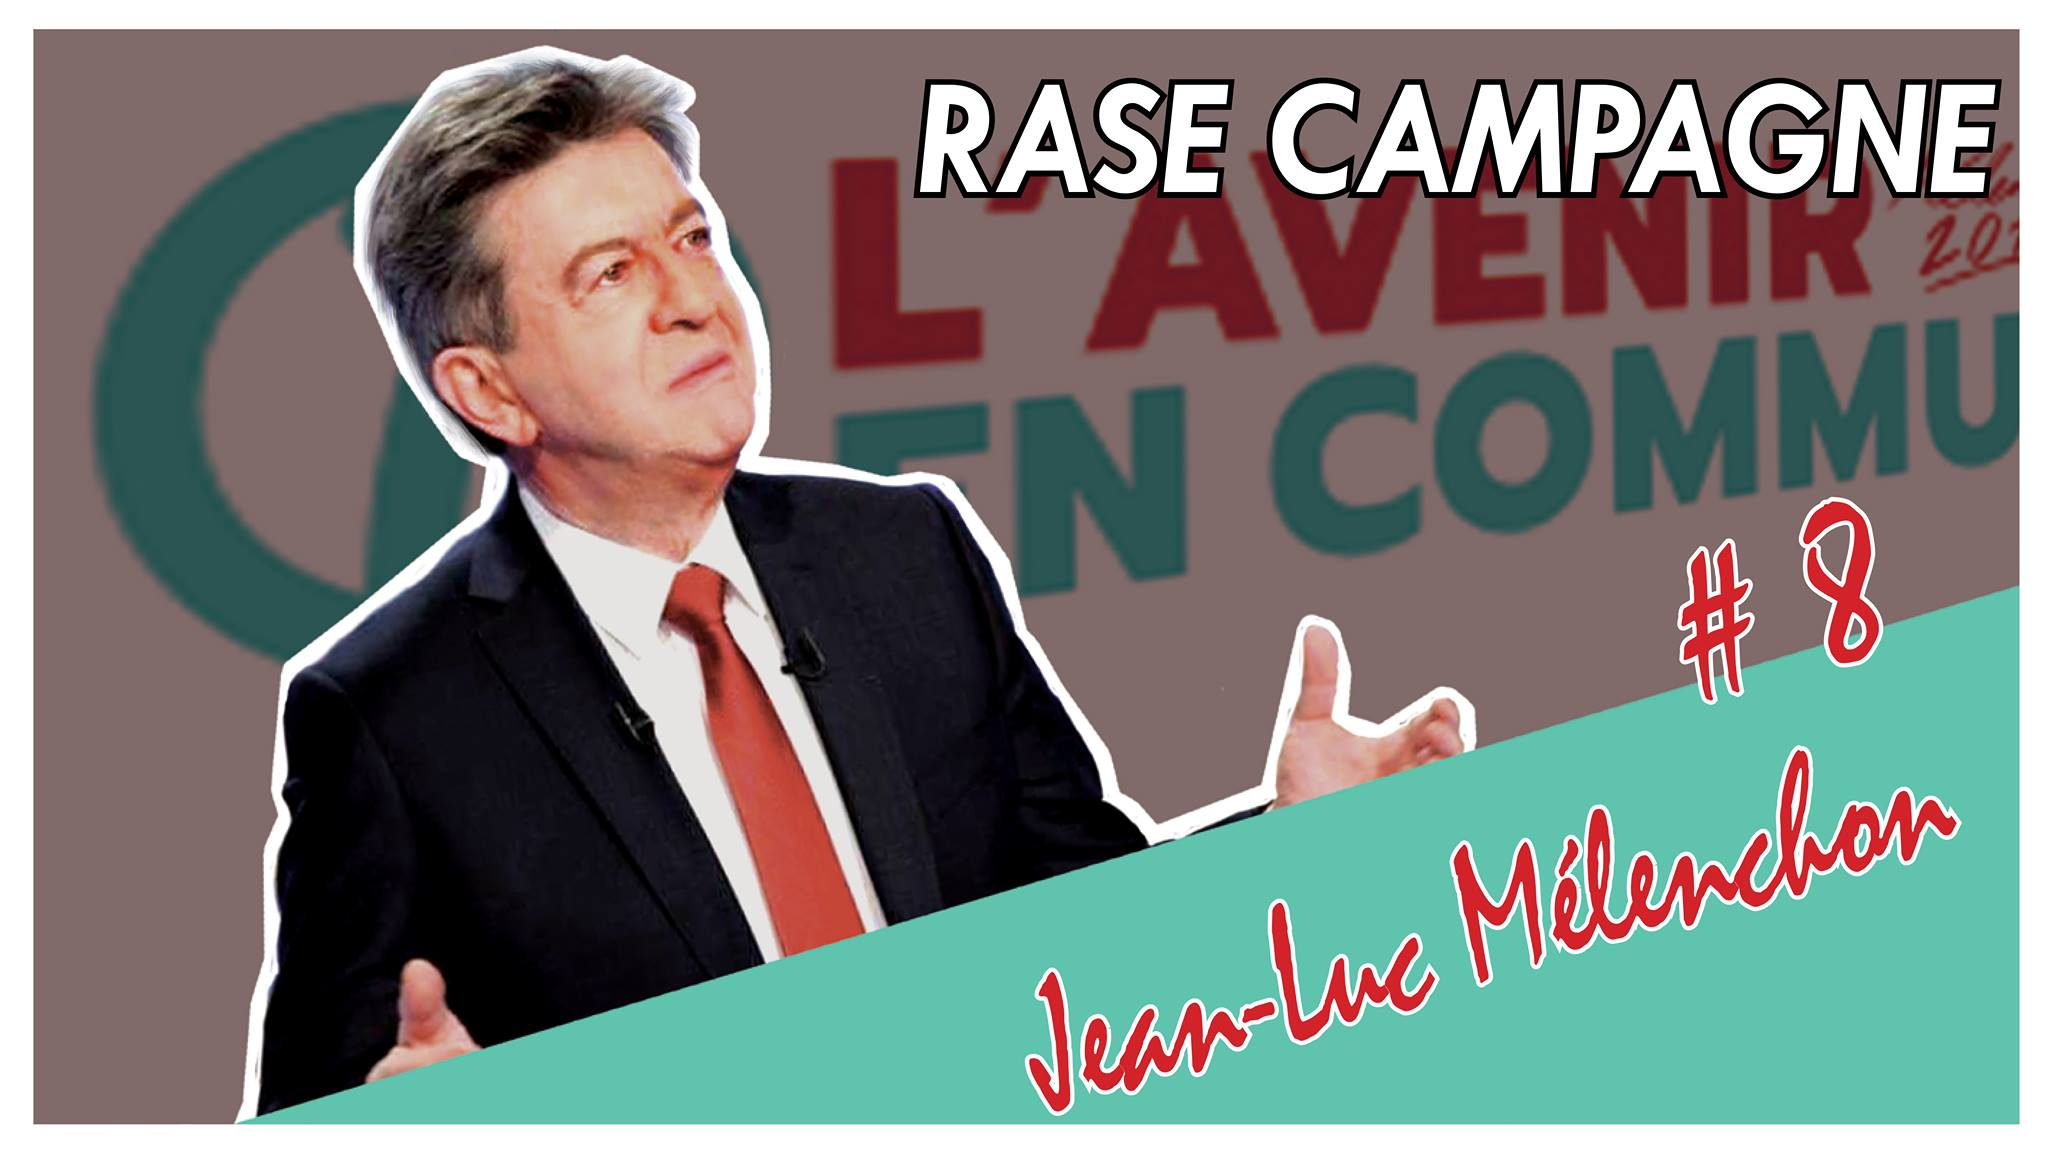 Photo of Rase Campagne #8 – Jean-Luc Mélenchon